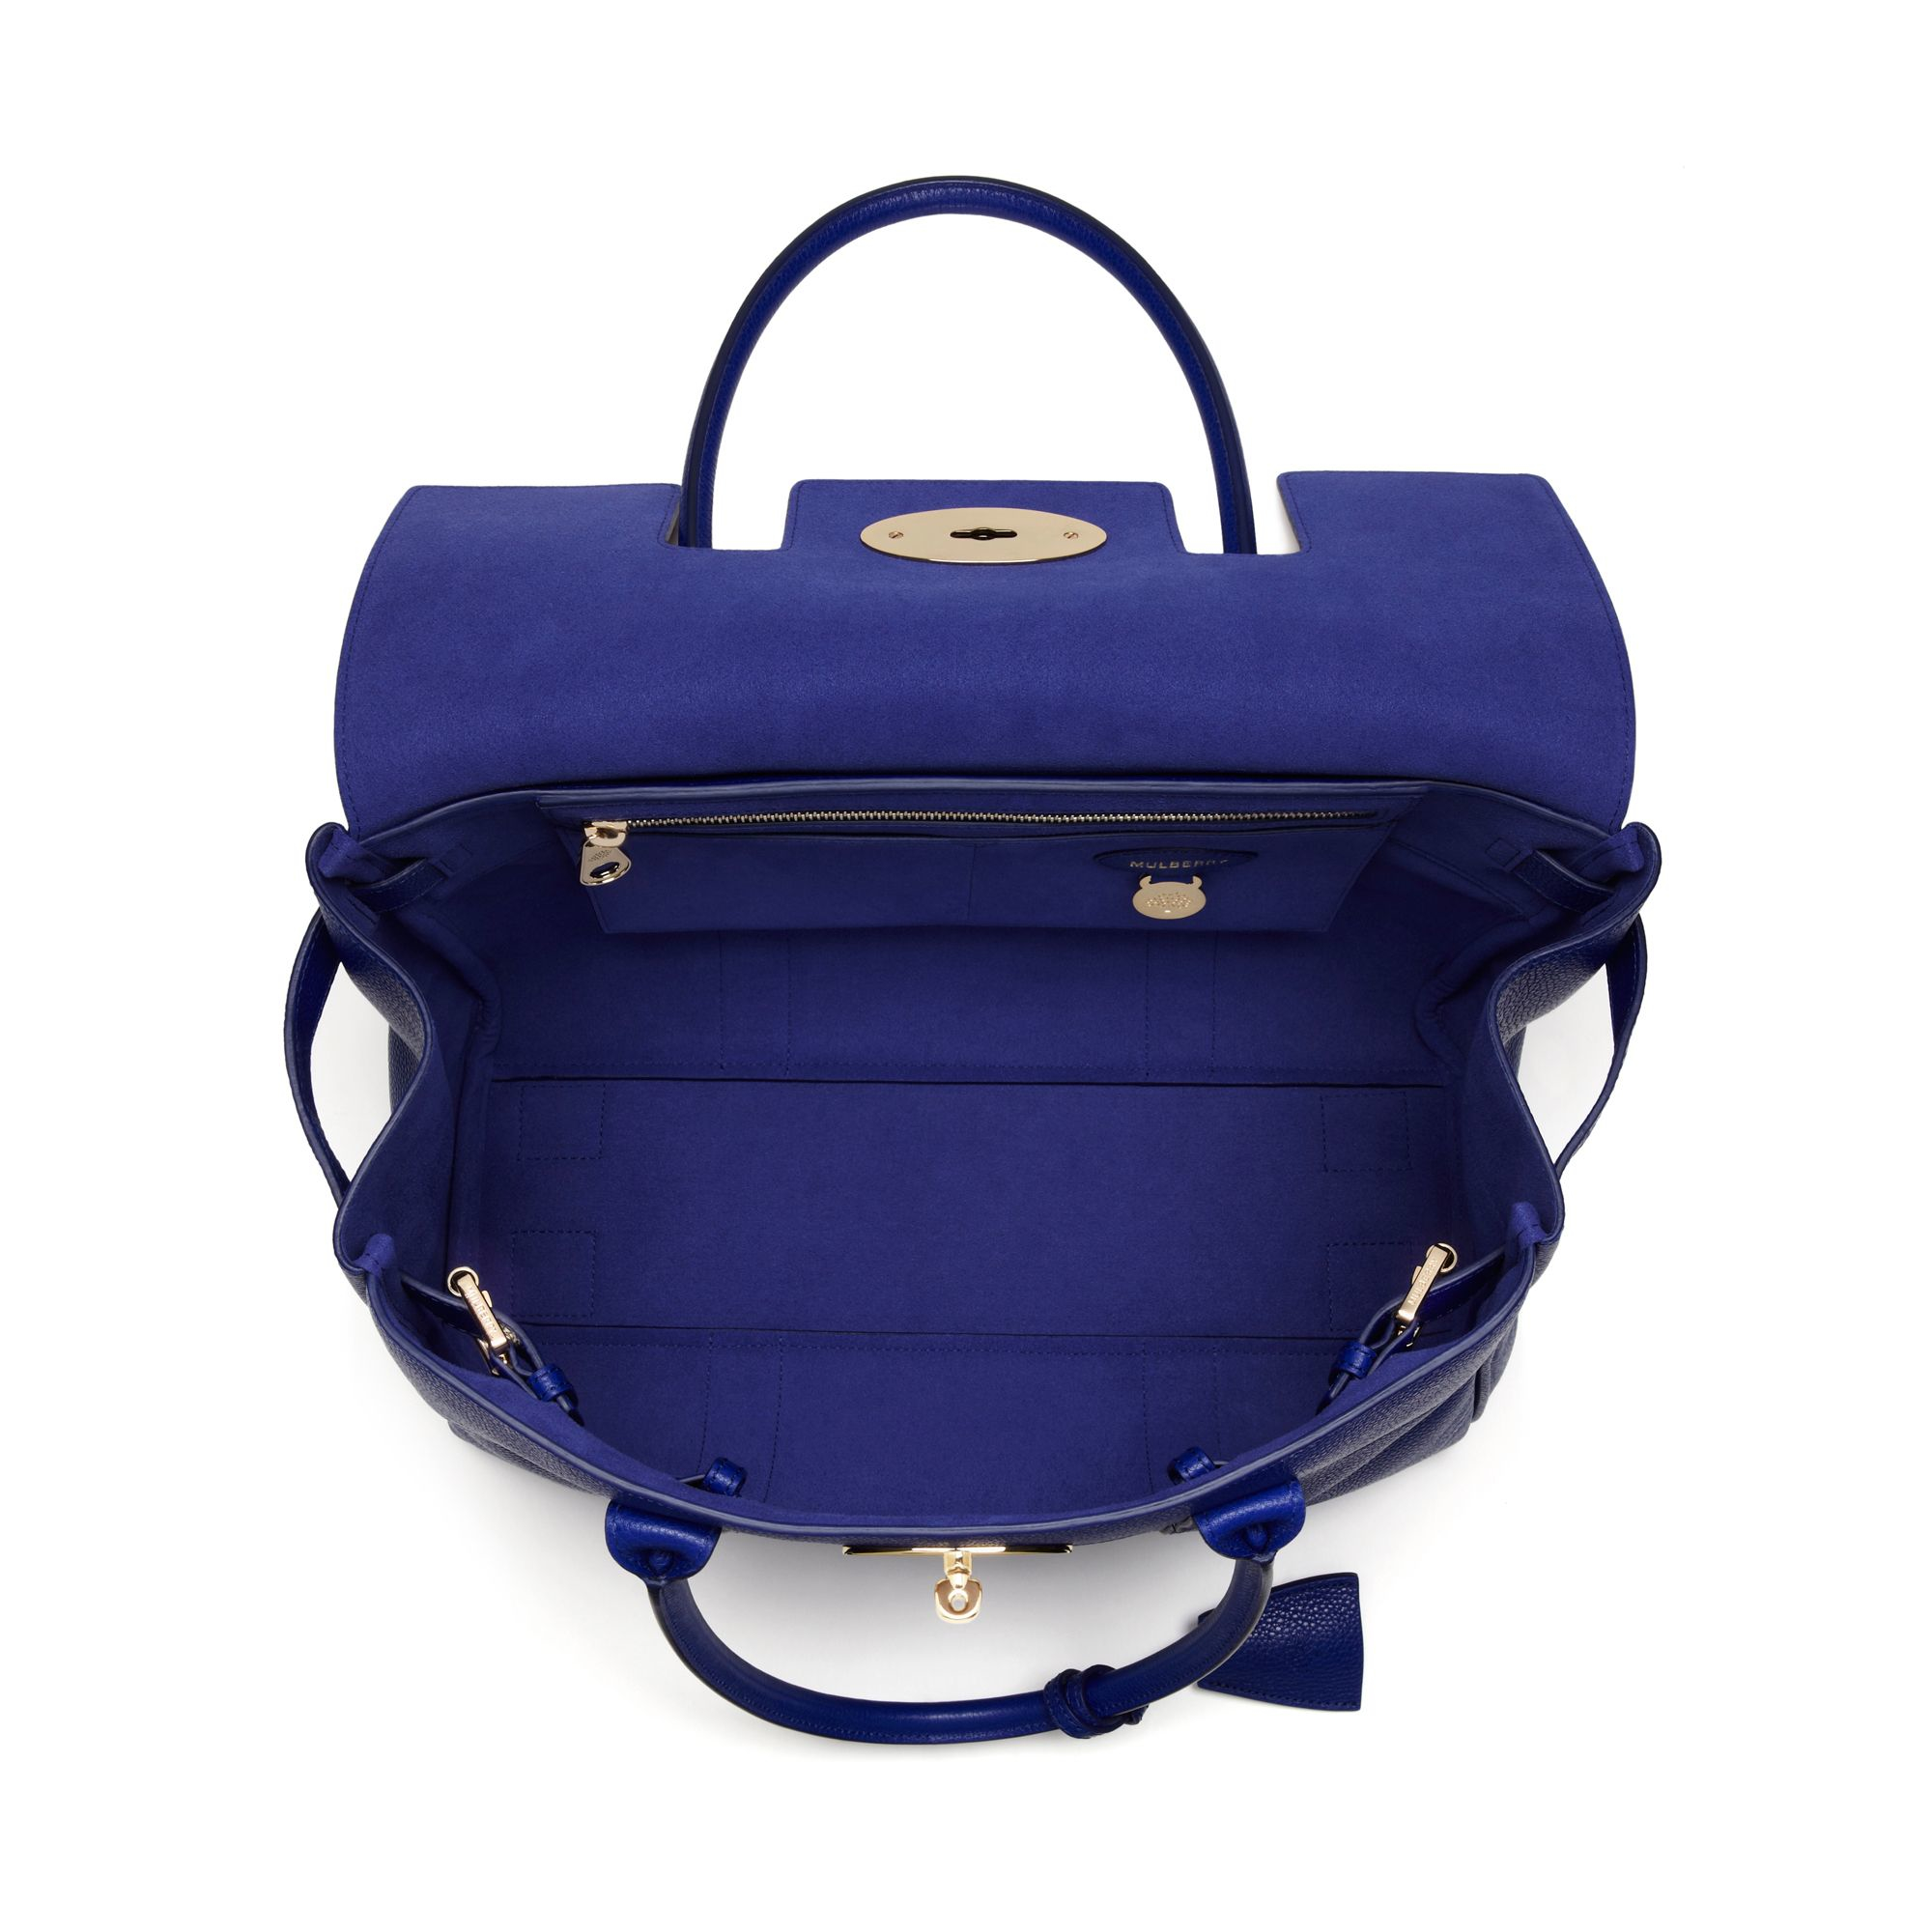 fa1a414f5f86 Mulberry Bayswater Leather Bag in Blue